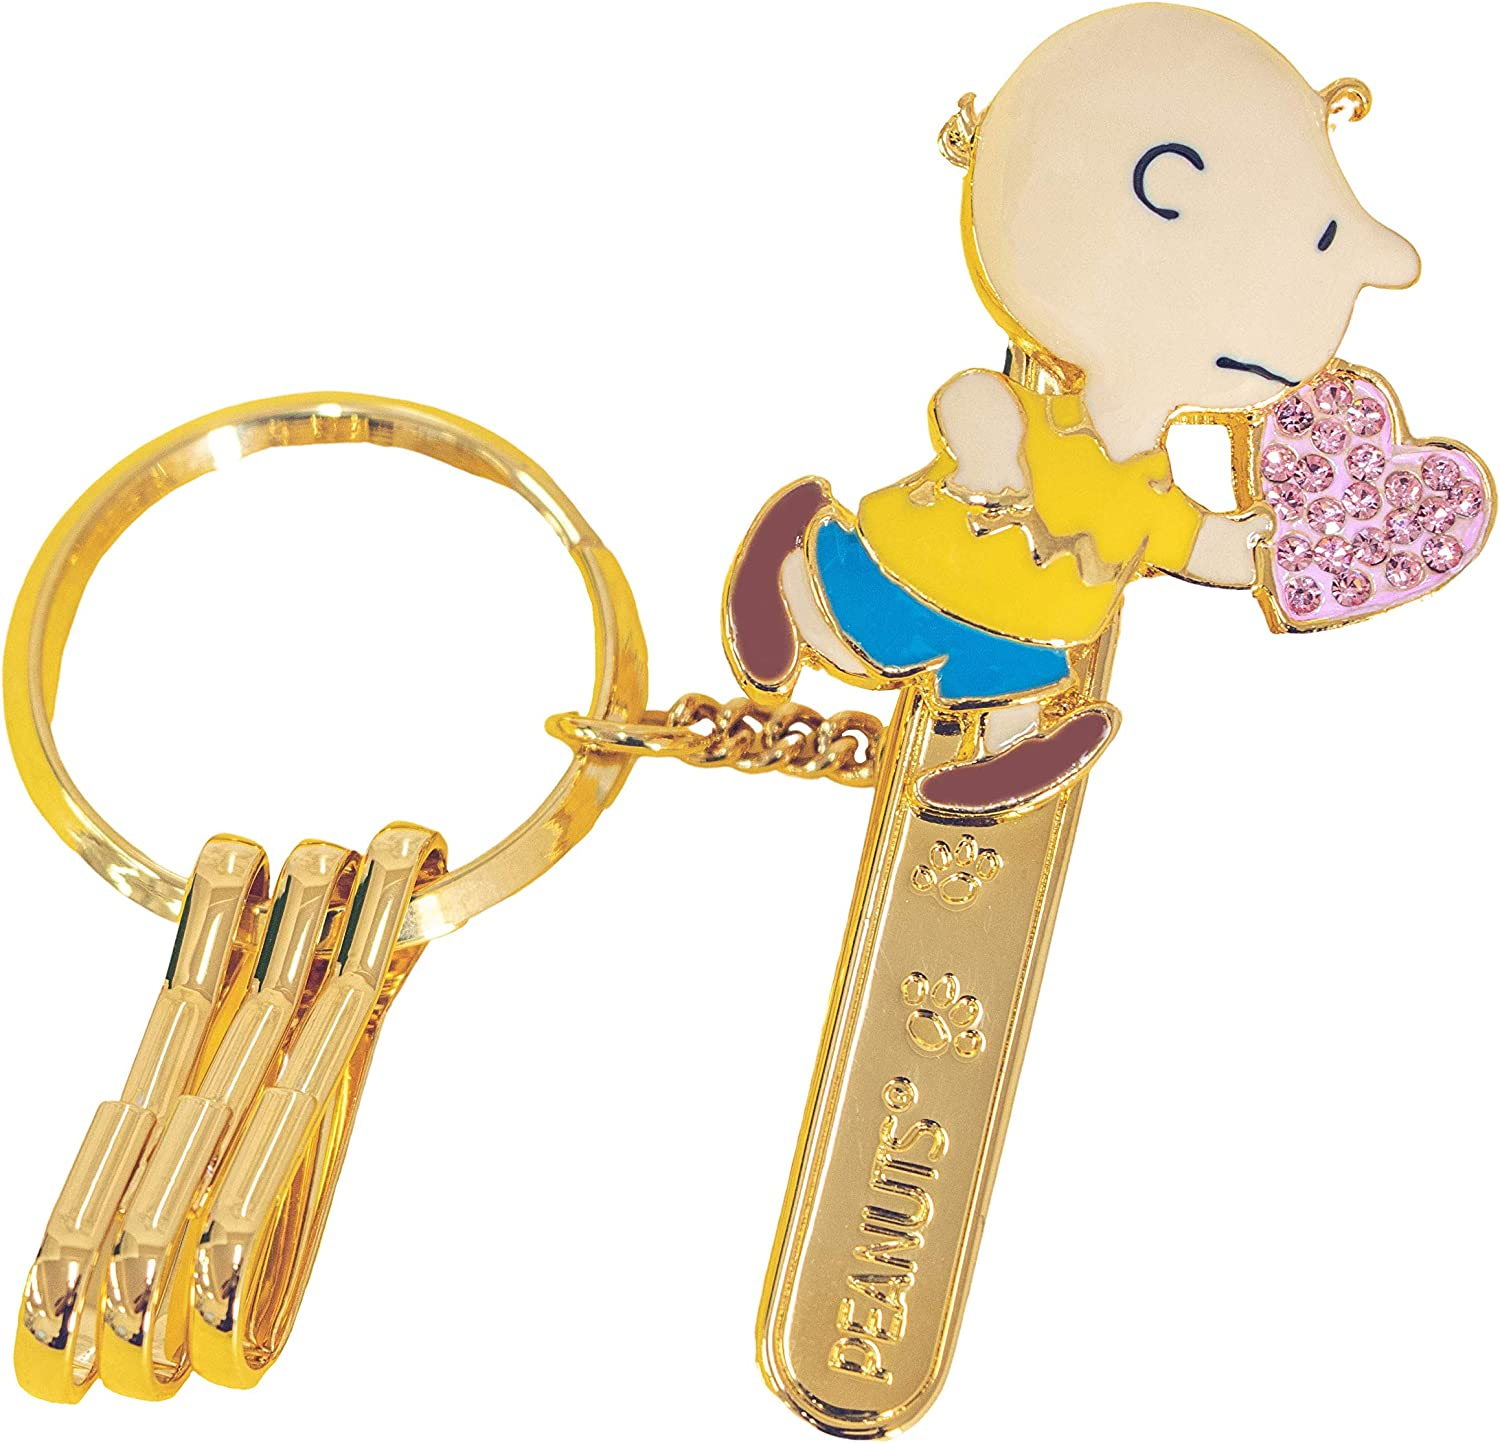 PEANUTS bag key clip Snoopy Charlie Brown Heart domestic been inspected regular article